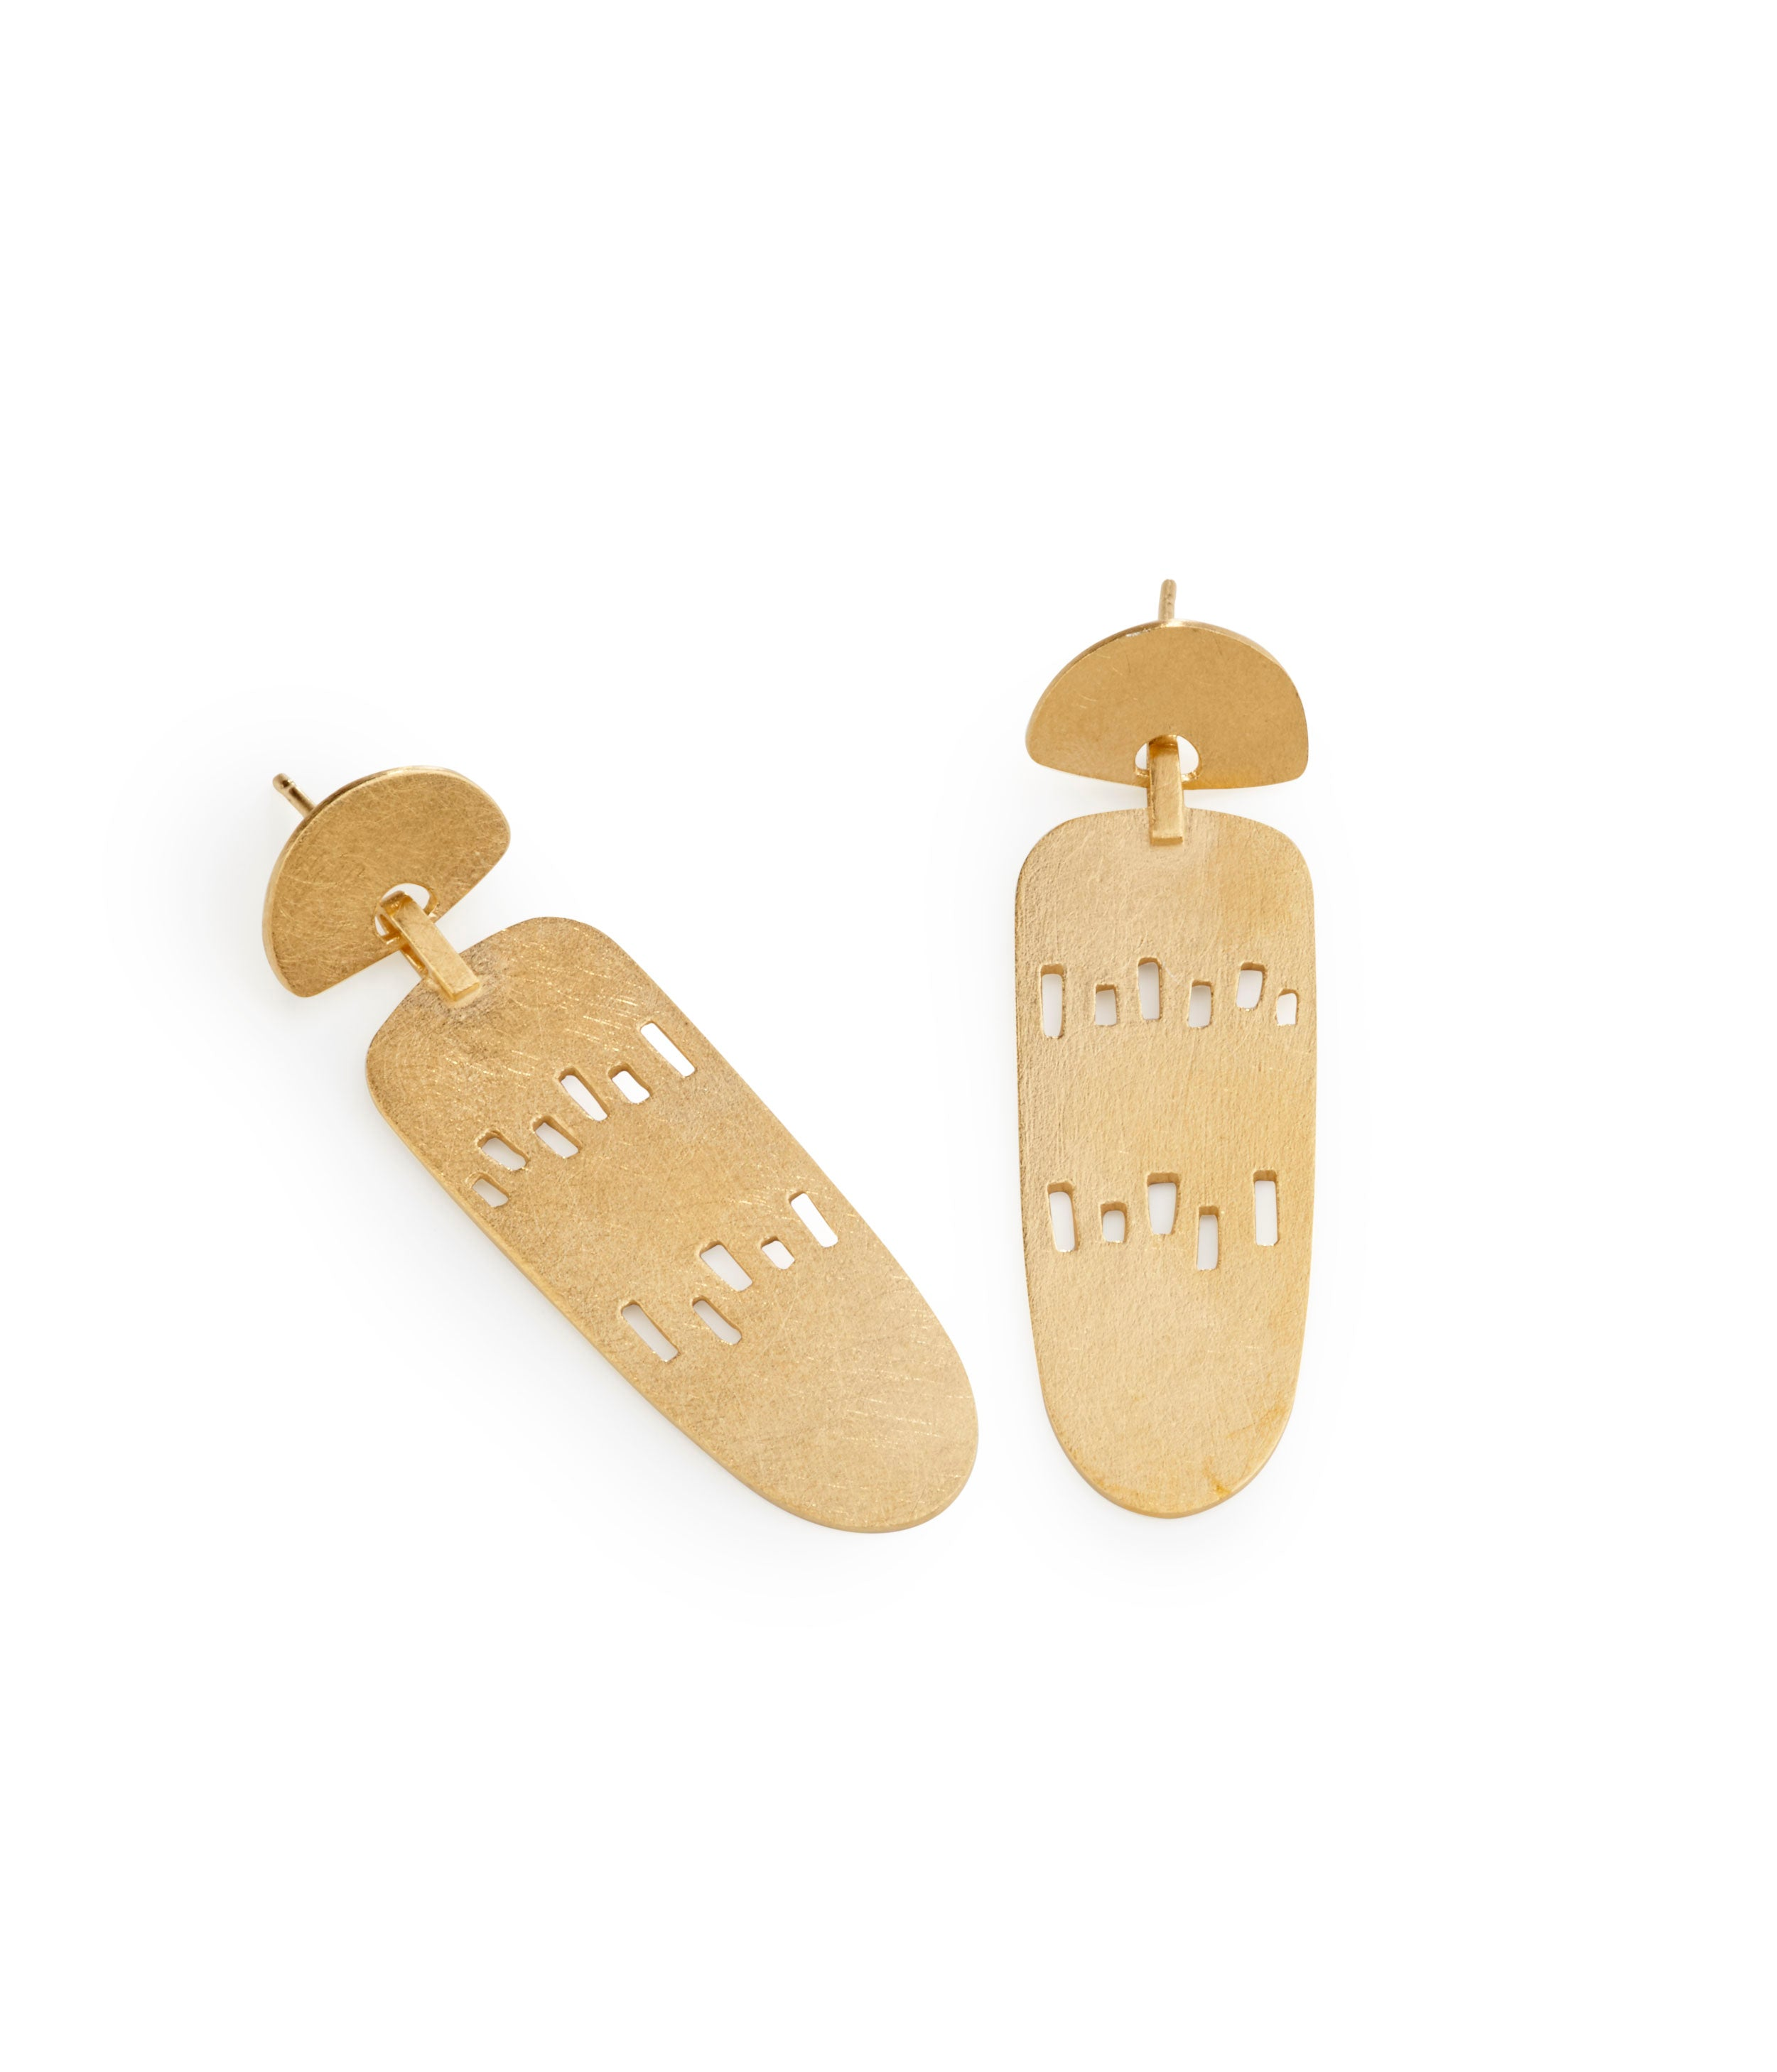 Elongated Solar Earrings Gold Plated